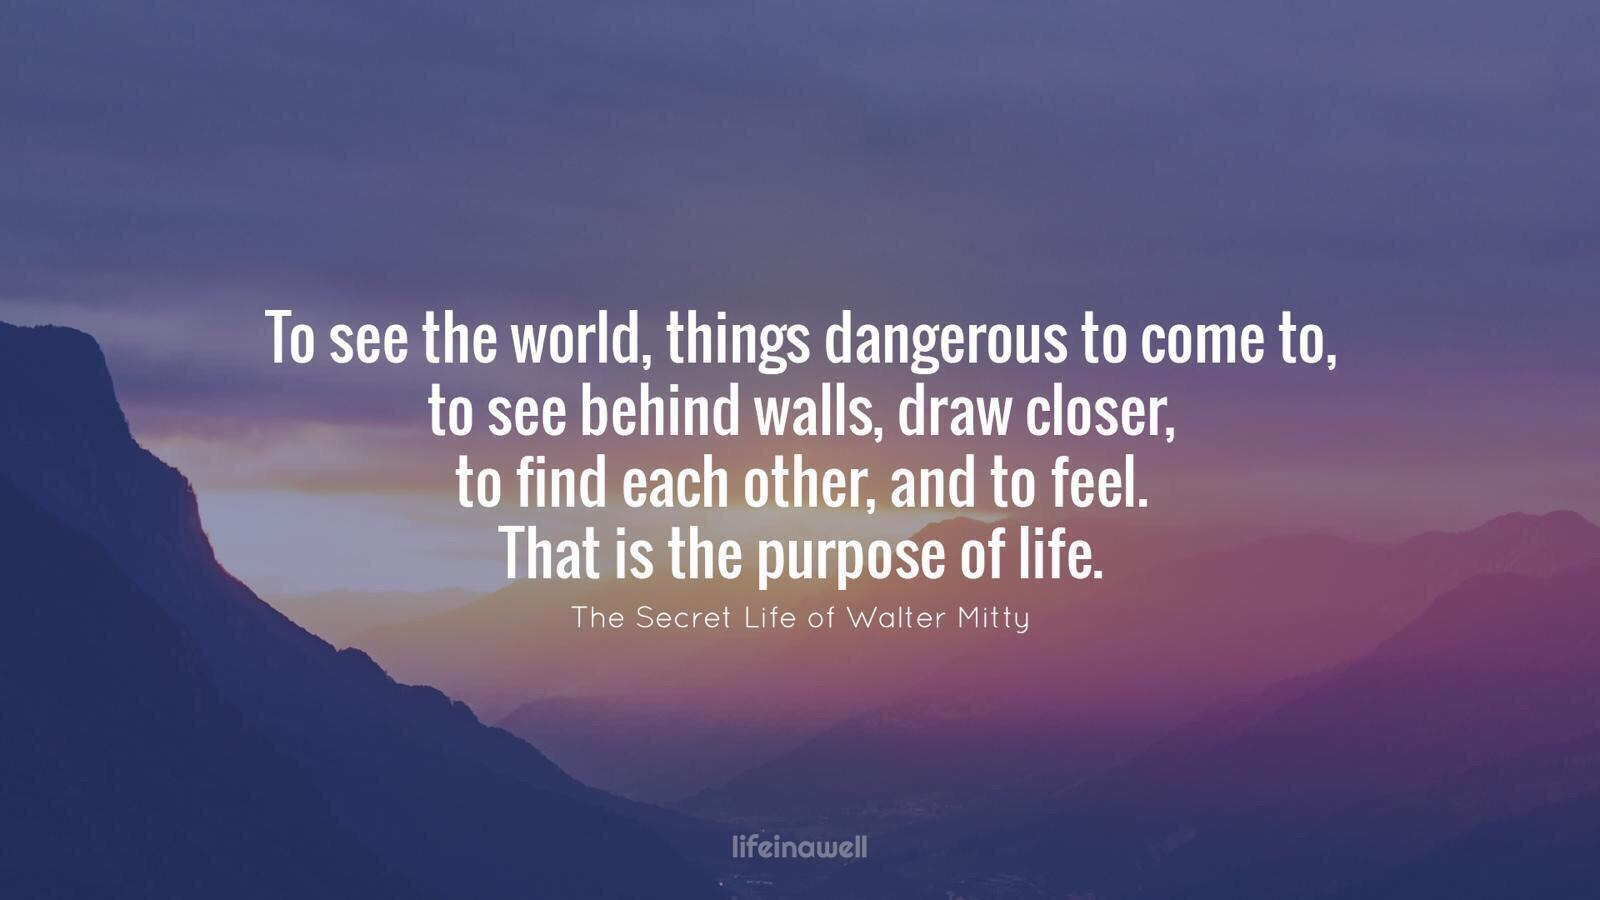 To see the world things dangerous to come to, to see behind walls draw closer, The Secret Life of https://inspirational.ly